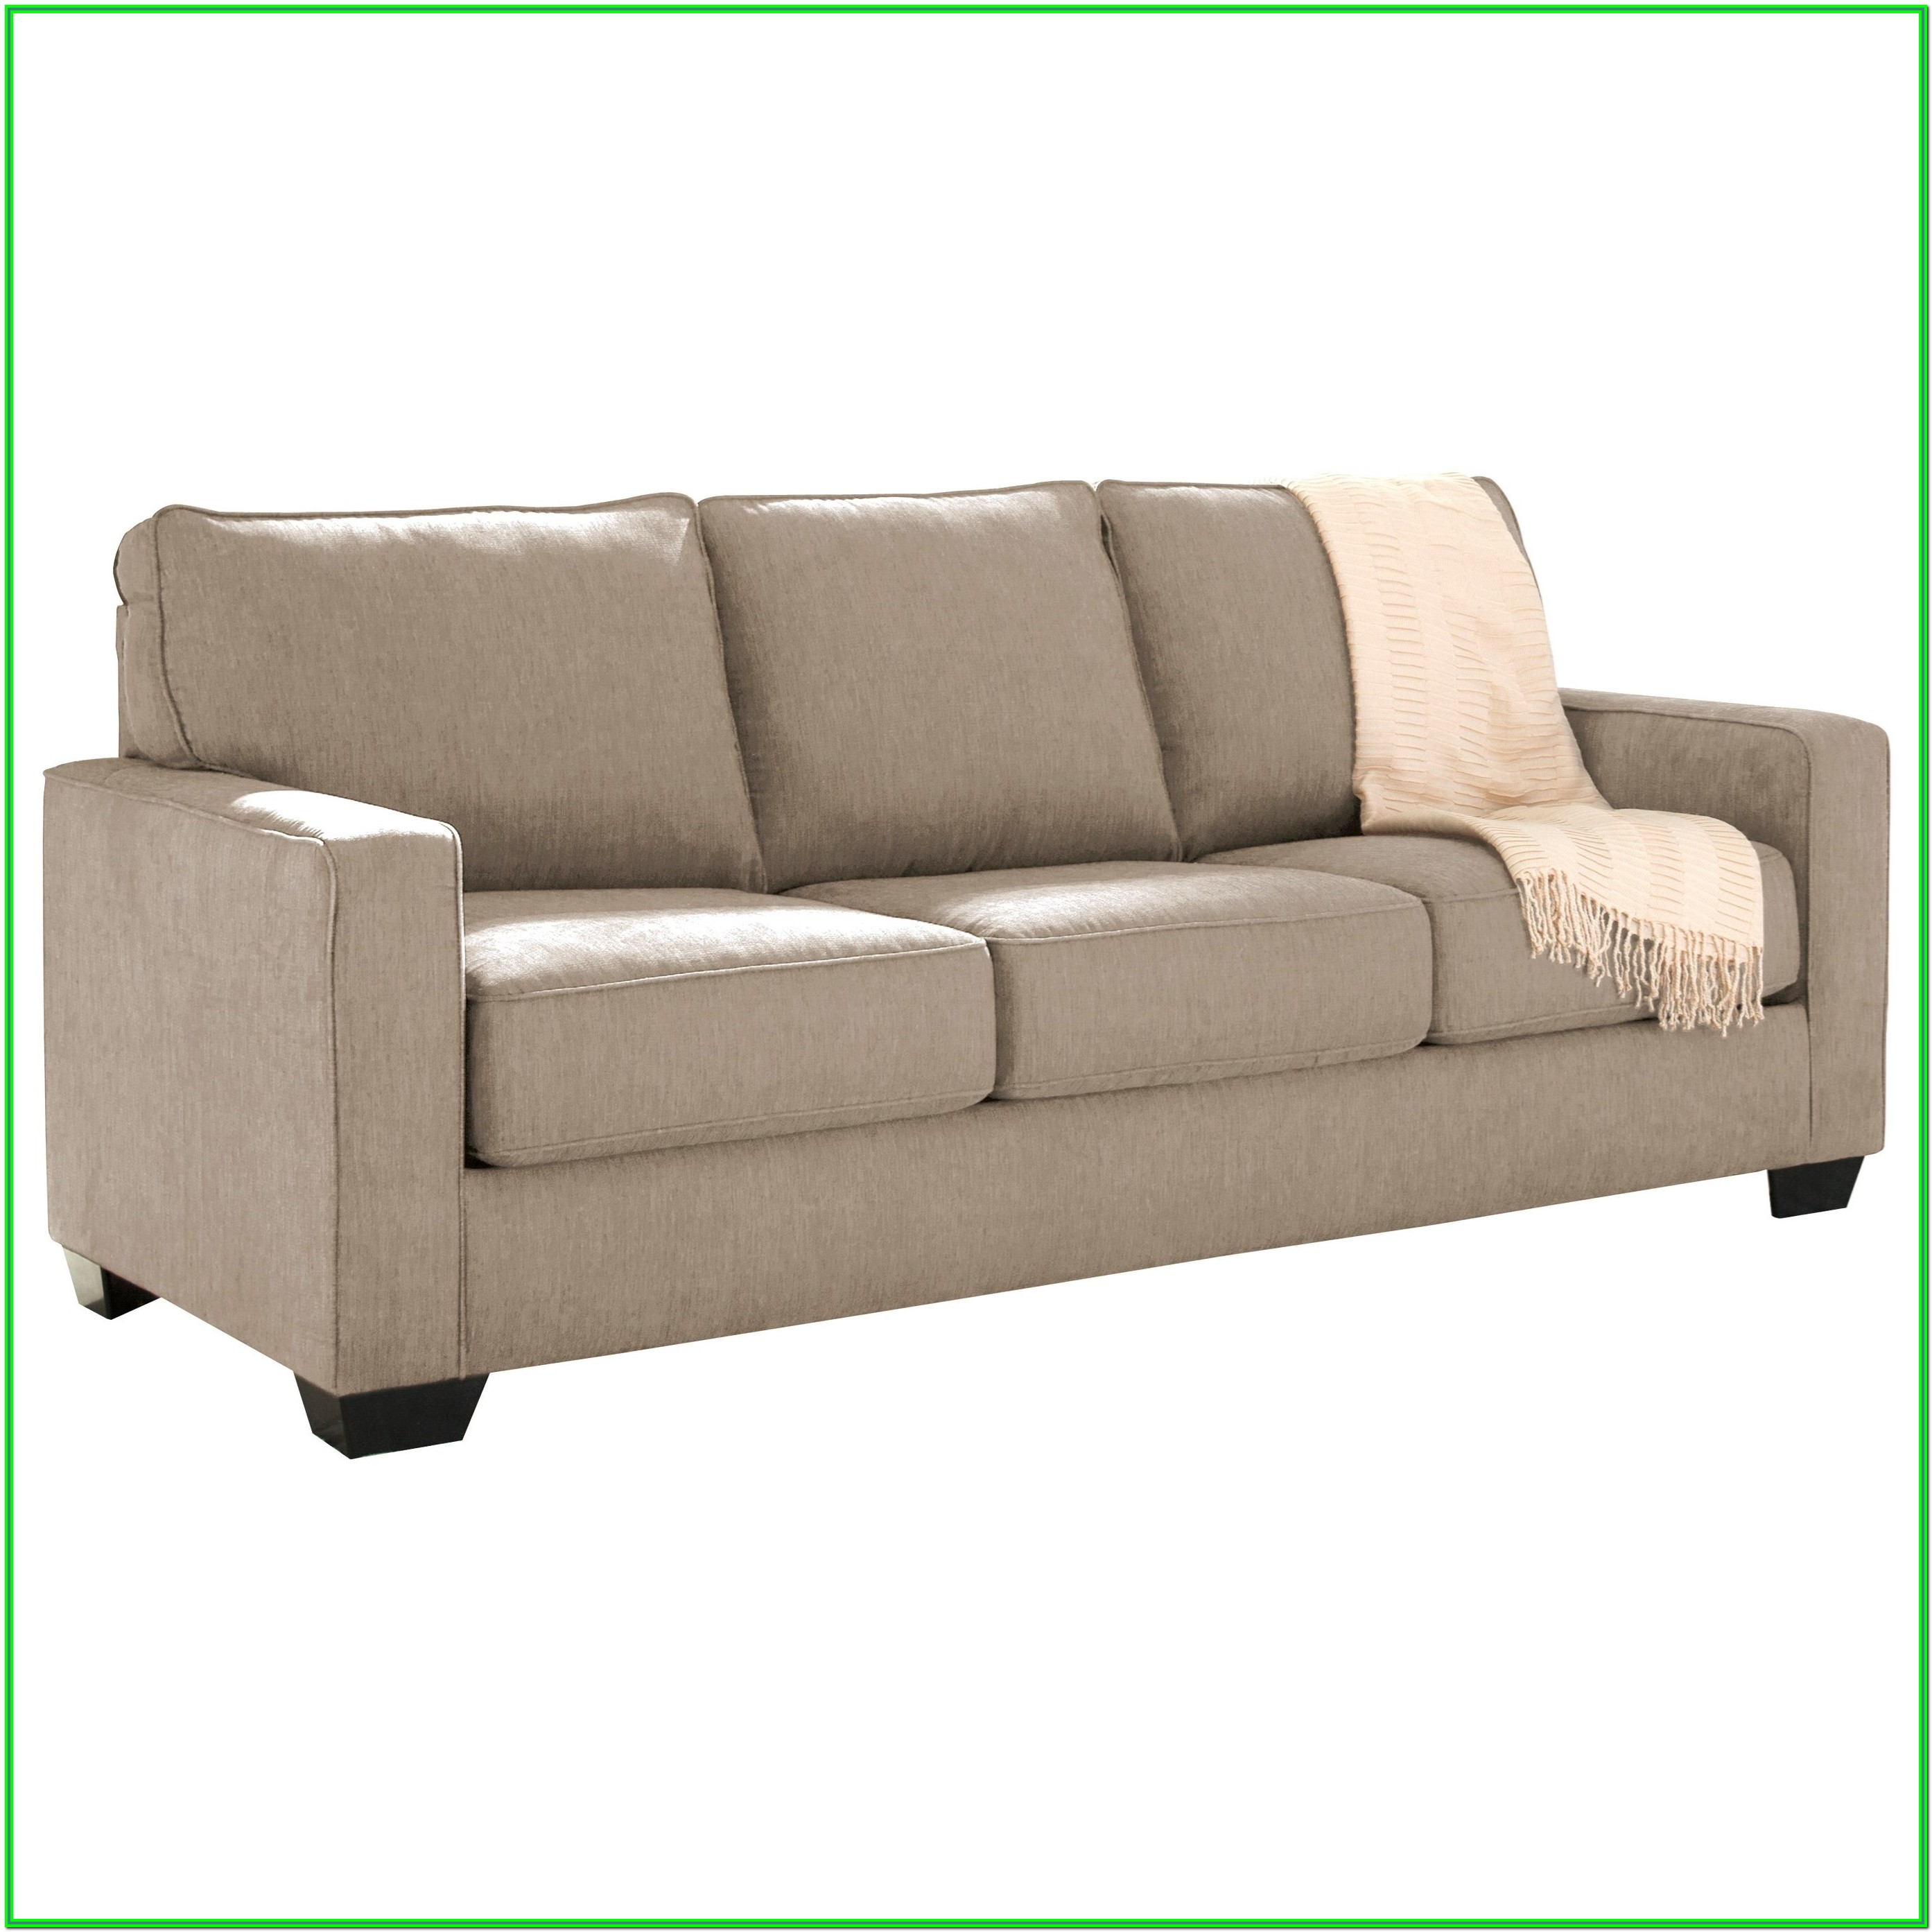 Ashley Furniture Signature Design Larkinhurst Traditional Sleeper Sofa Queen Size